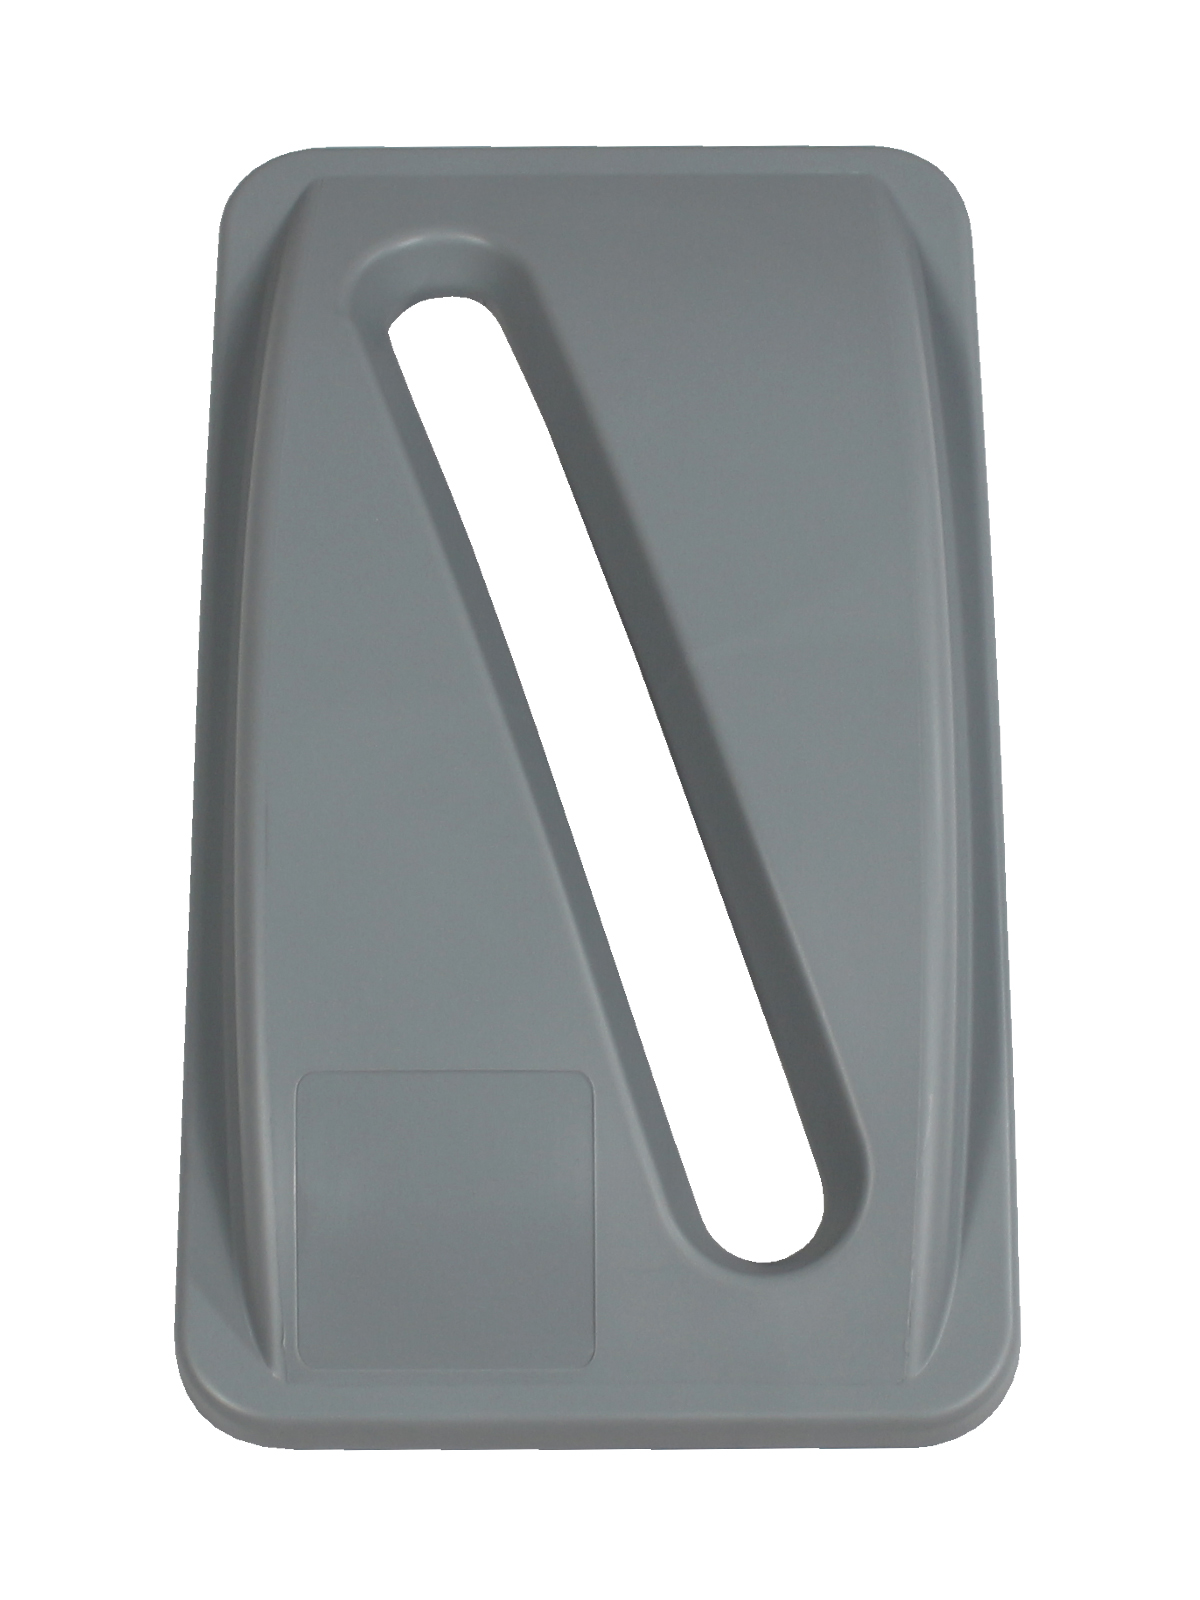 WASTE WATCHER - Single - Lid - Slot - Executive Grey